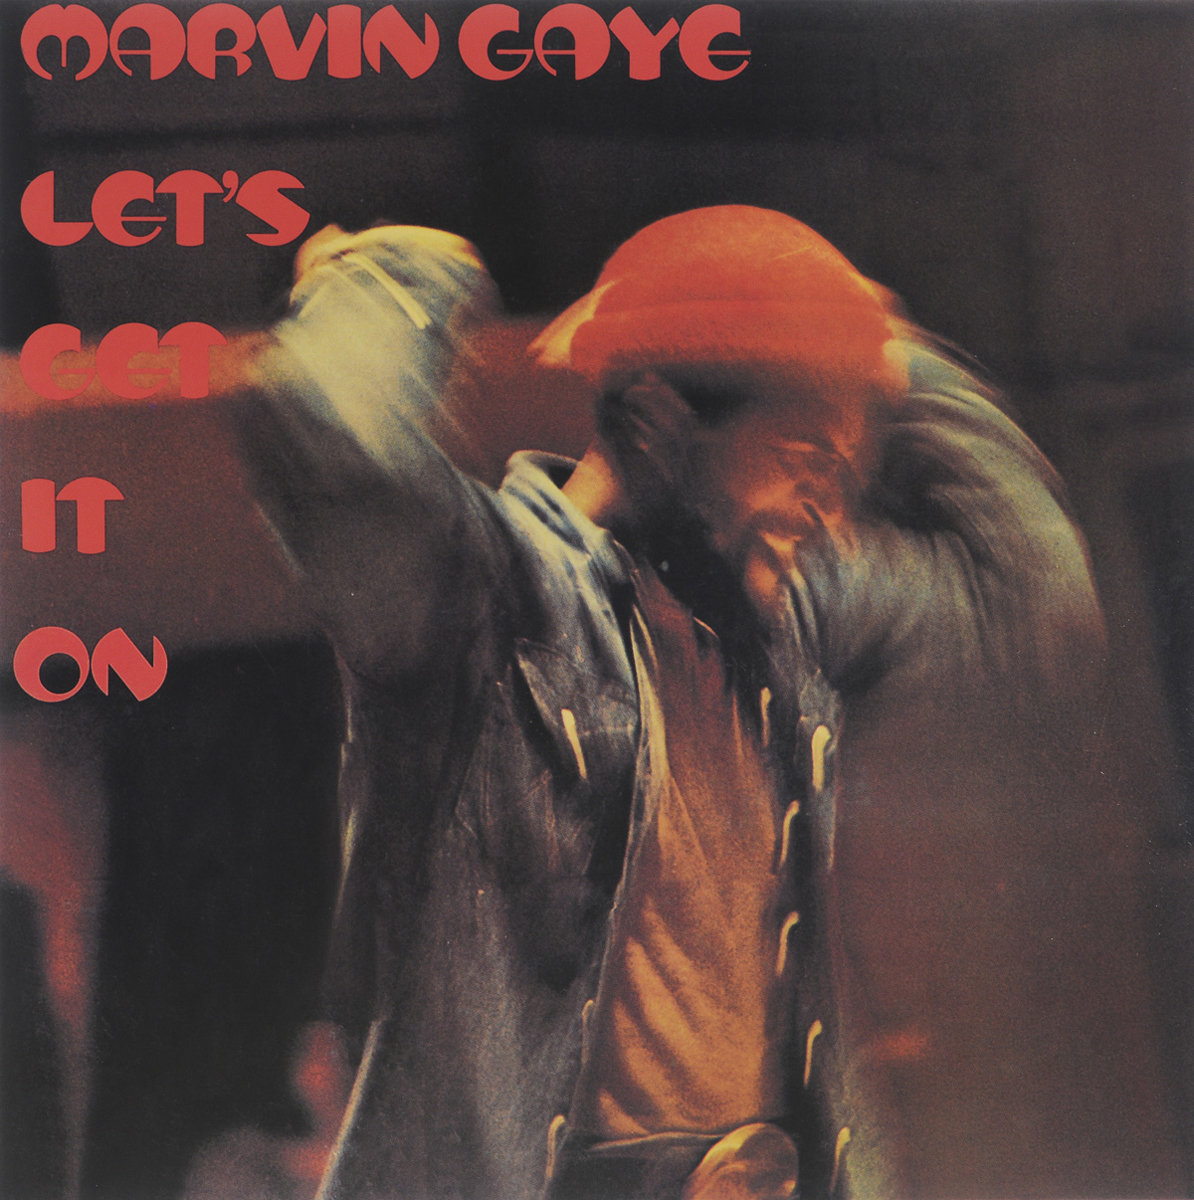 Марвин Гэй Marvin Gaye. Let's Get It On (LP) марвин гэй marvin gaye let s get it on blu ray audio